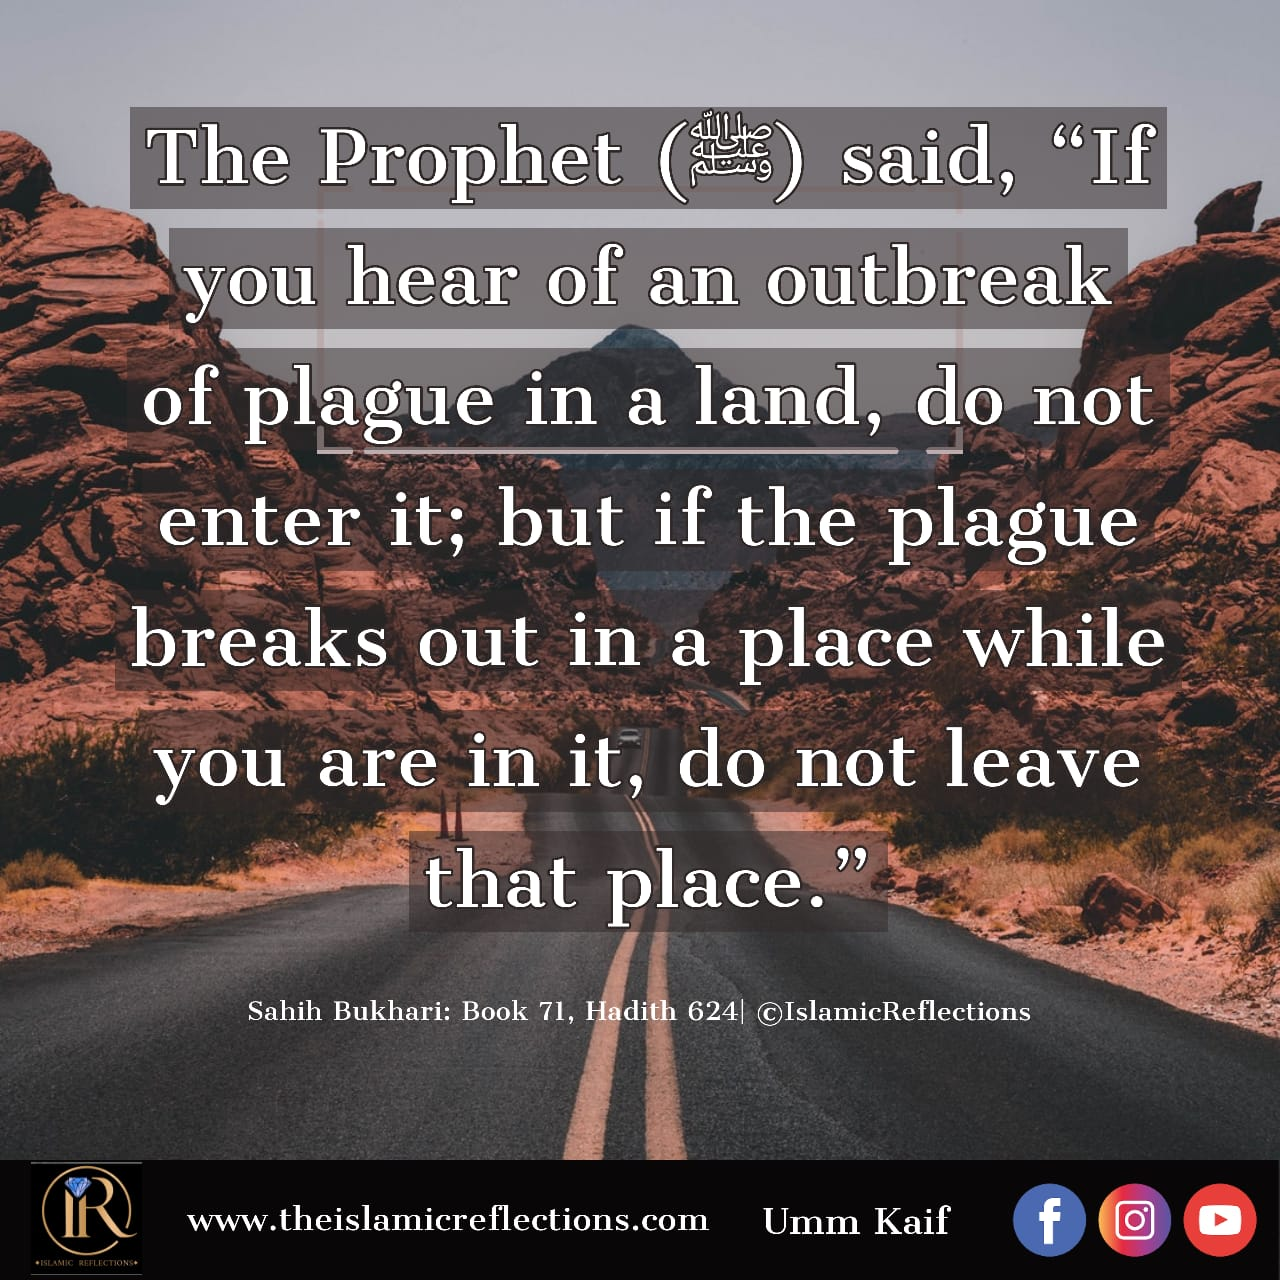 Hadith: Social Distancing In Times Of Plague